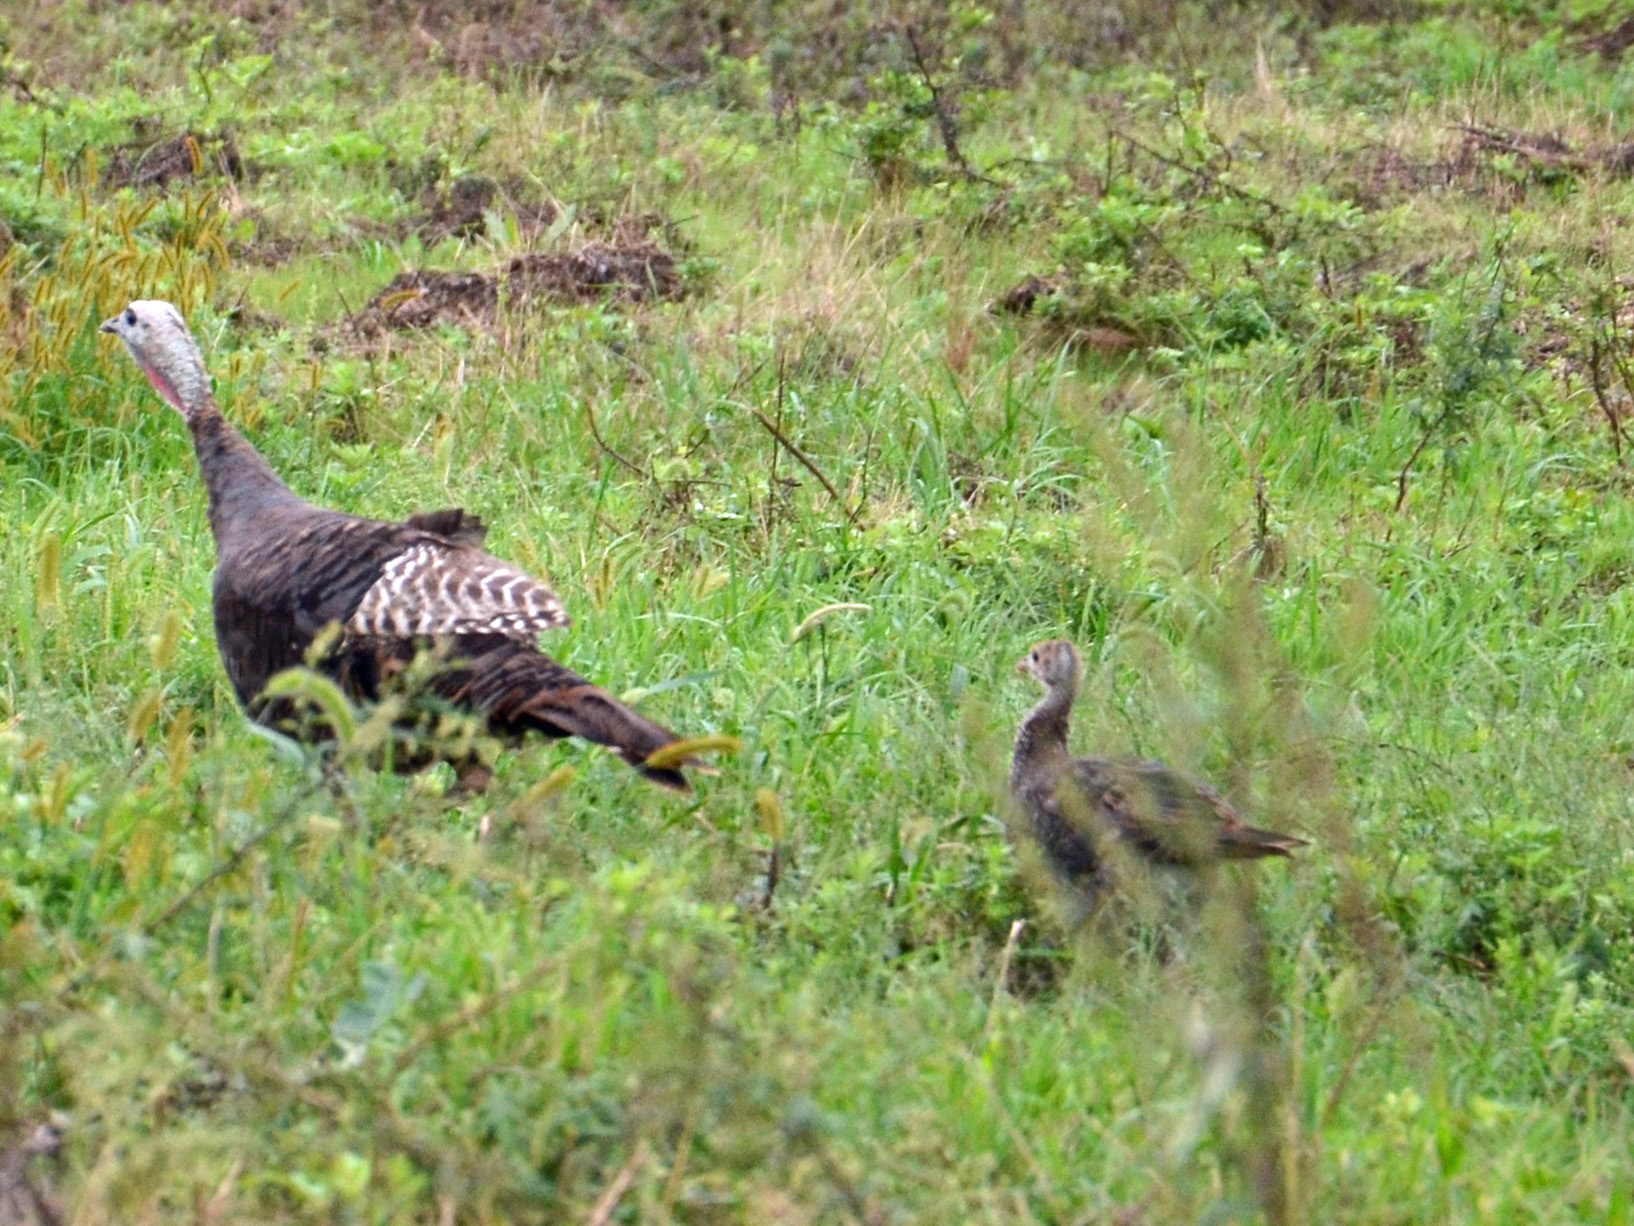 Young Turkey close behind mom